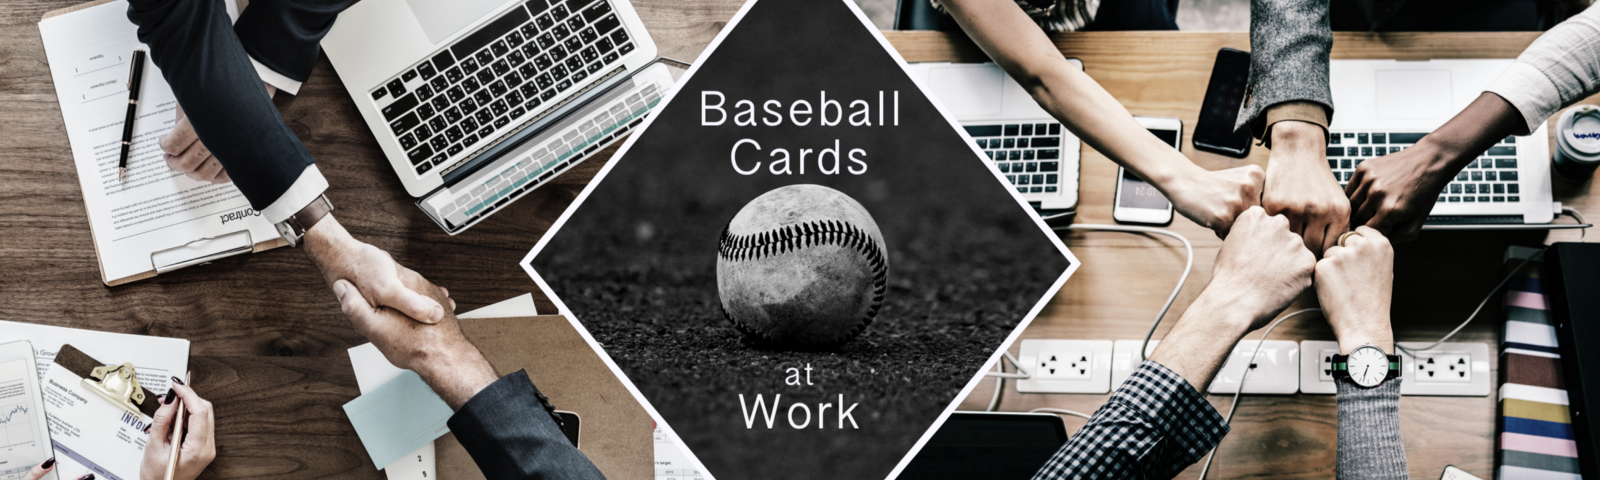 Trading Baseball Cards at Work: How We Were Inspired by Ray